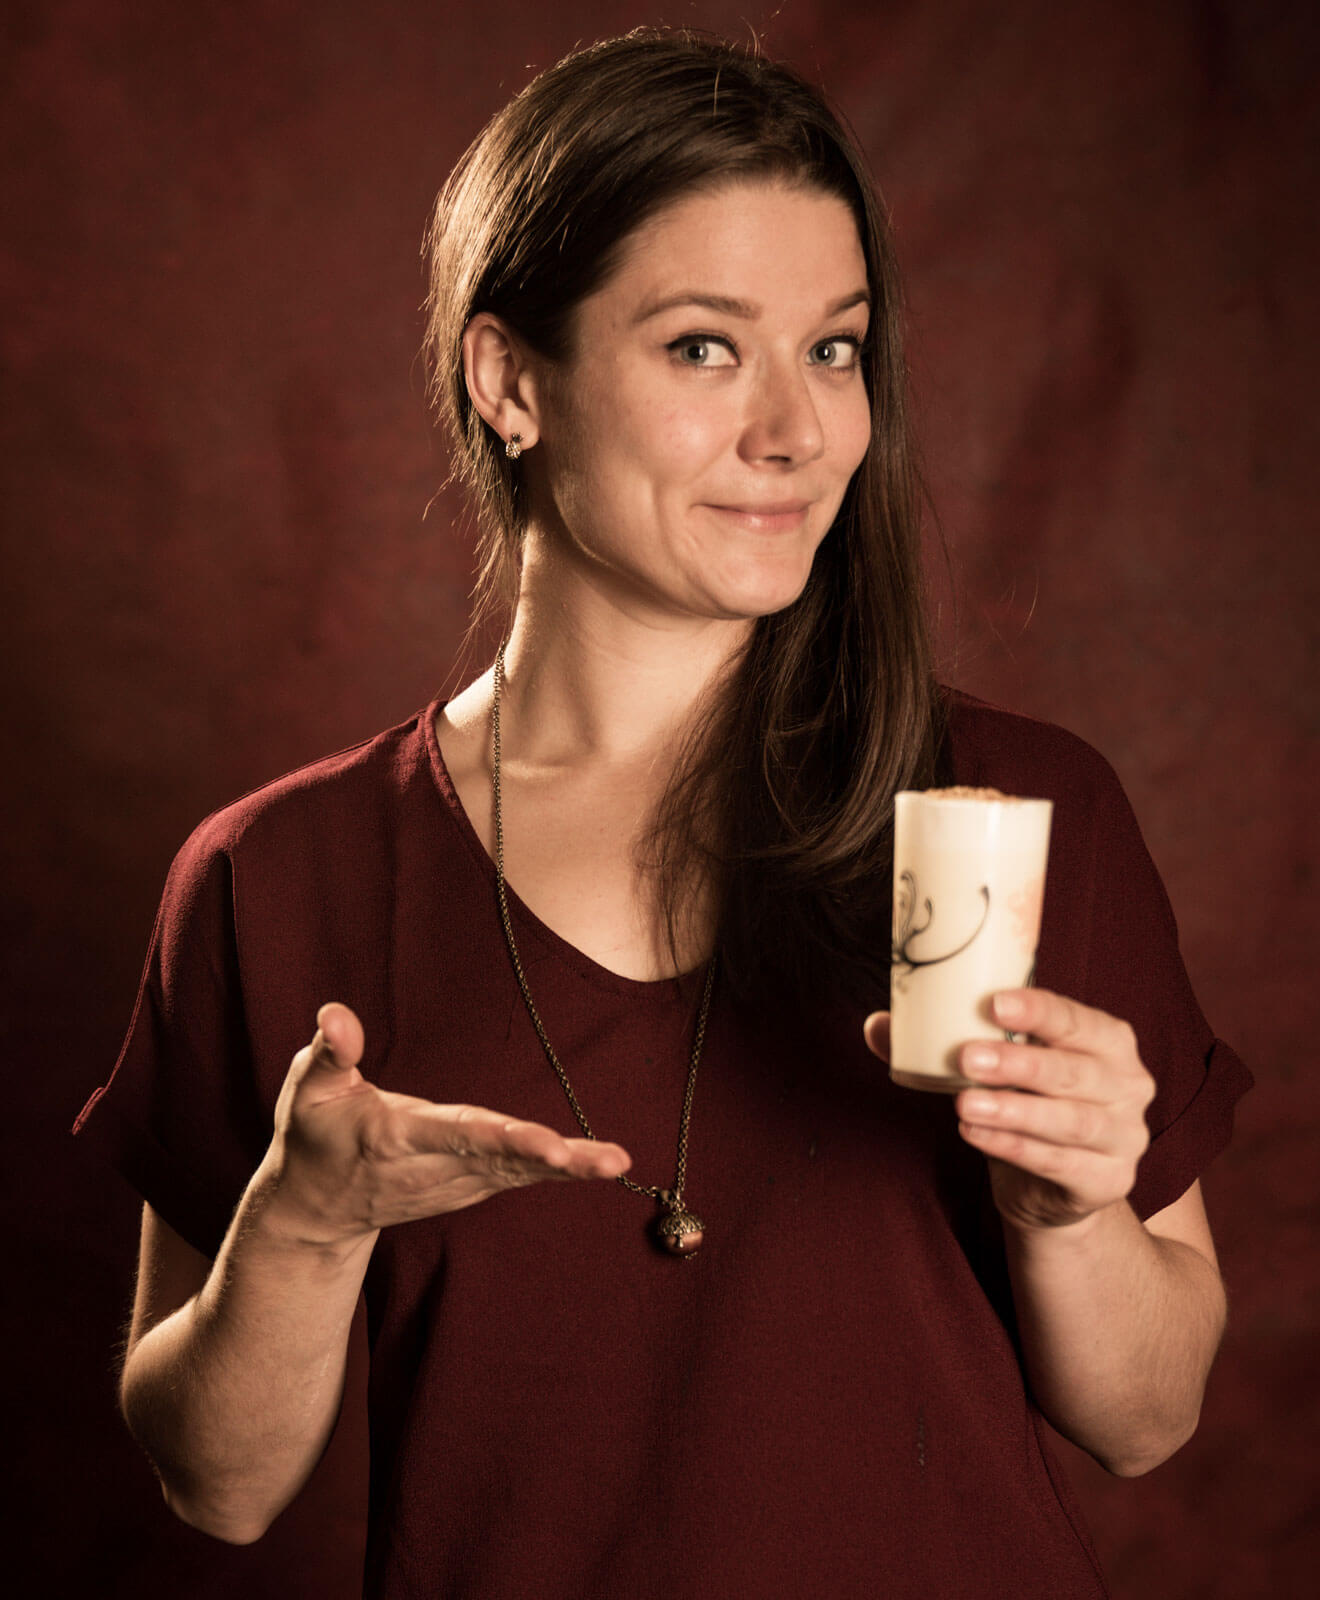 Stefanie Bair and her signature cocktail, The Colonel in the Kitchen